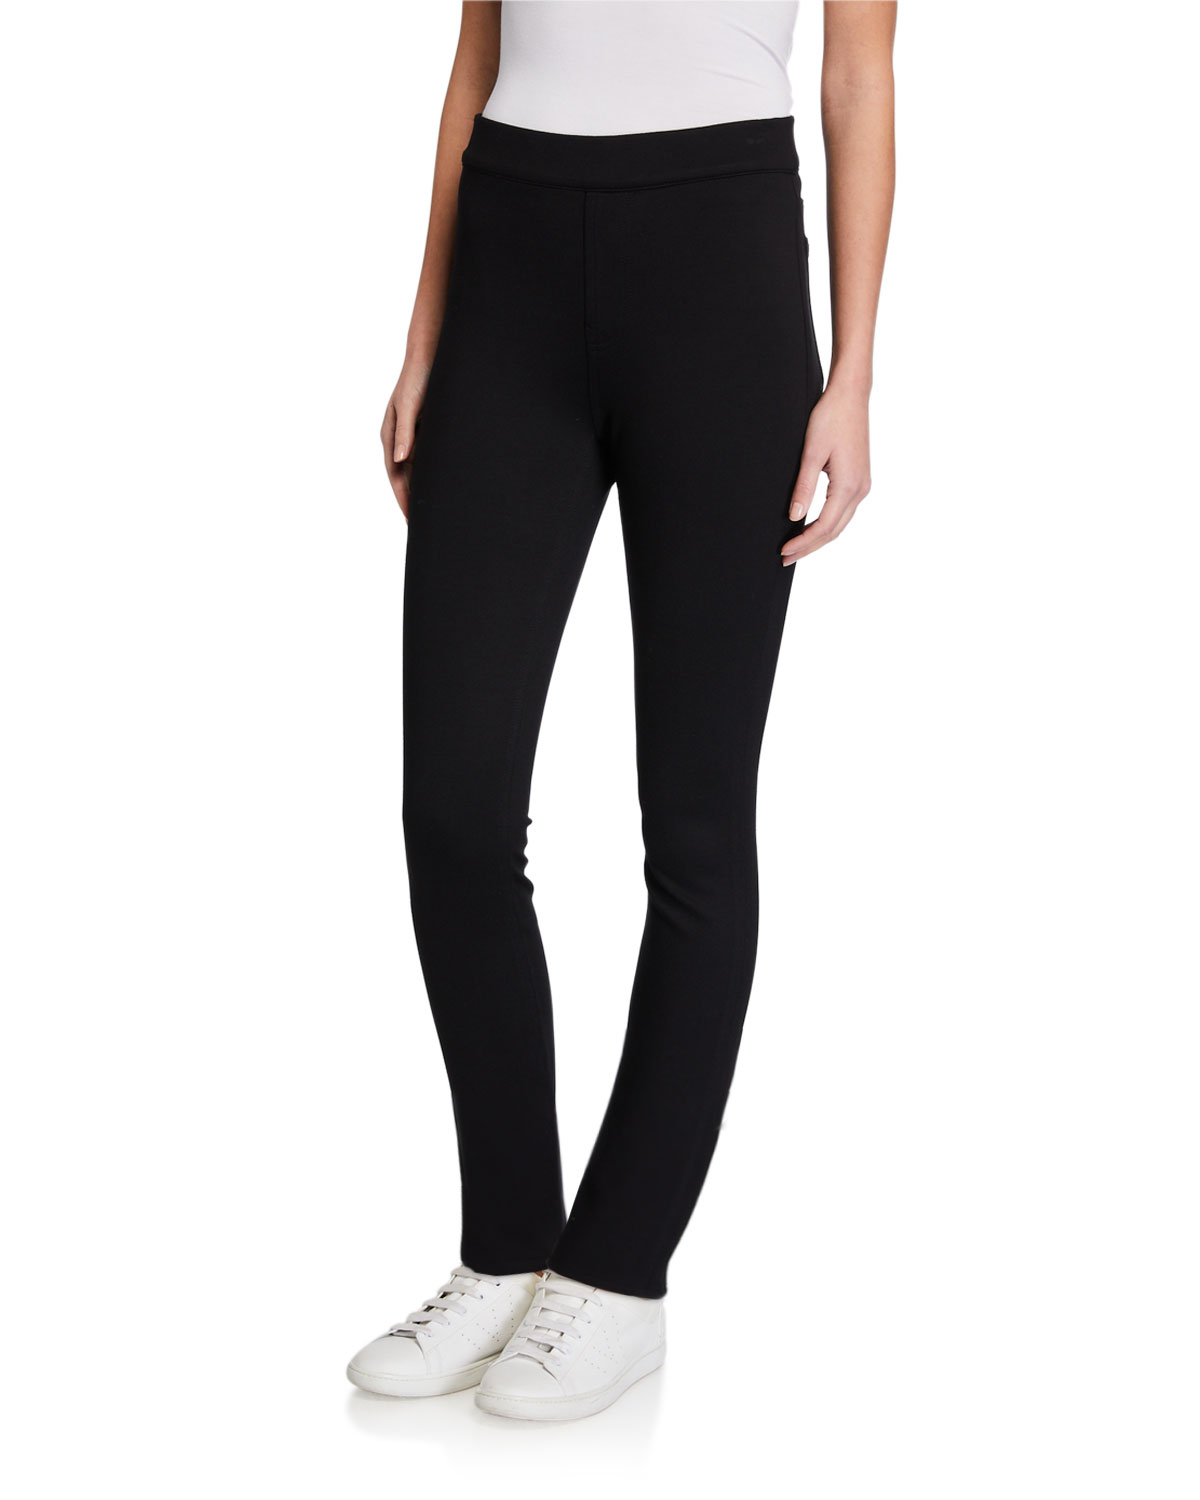 Jen7 by 7 for All Mankind Comfort Skinny Pull-On Knit Pants